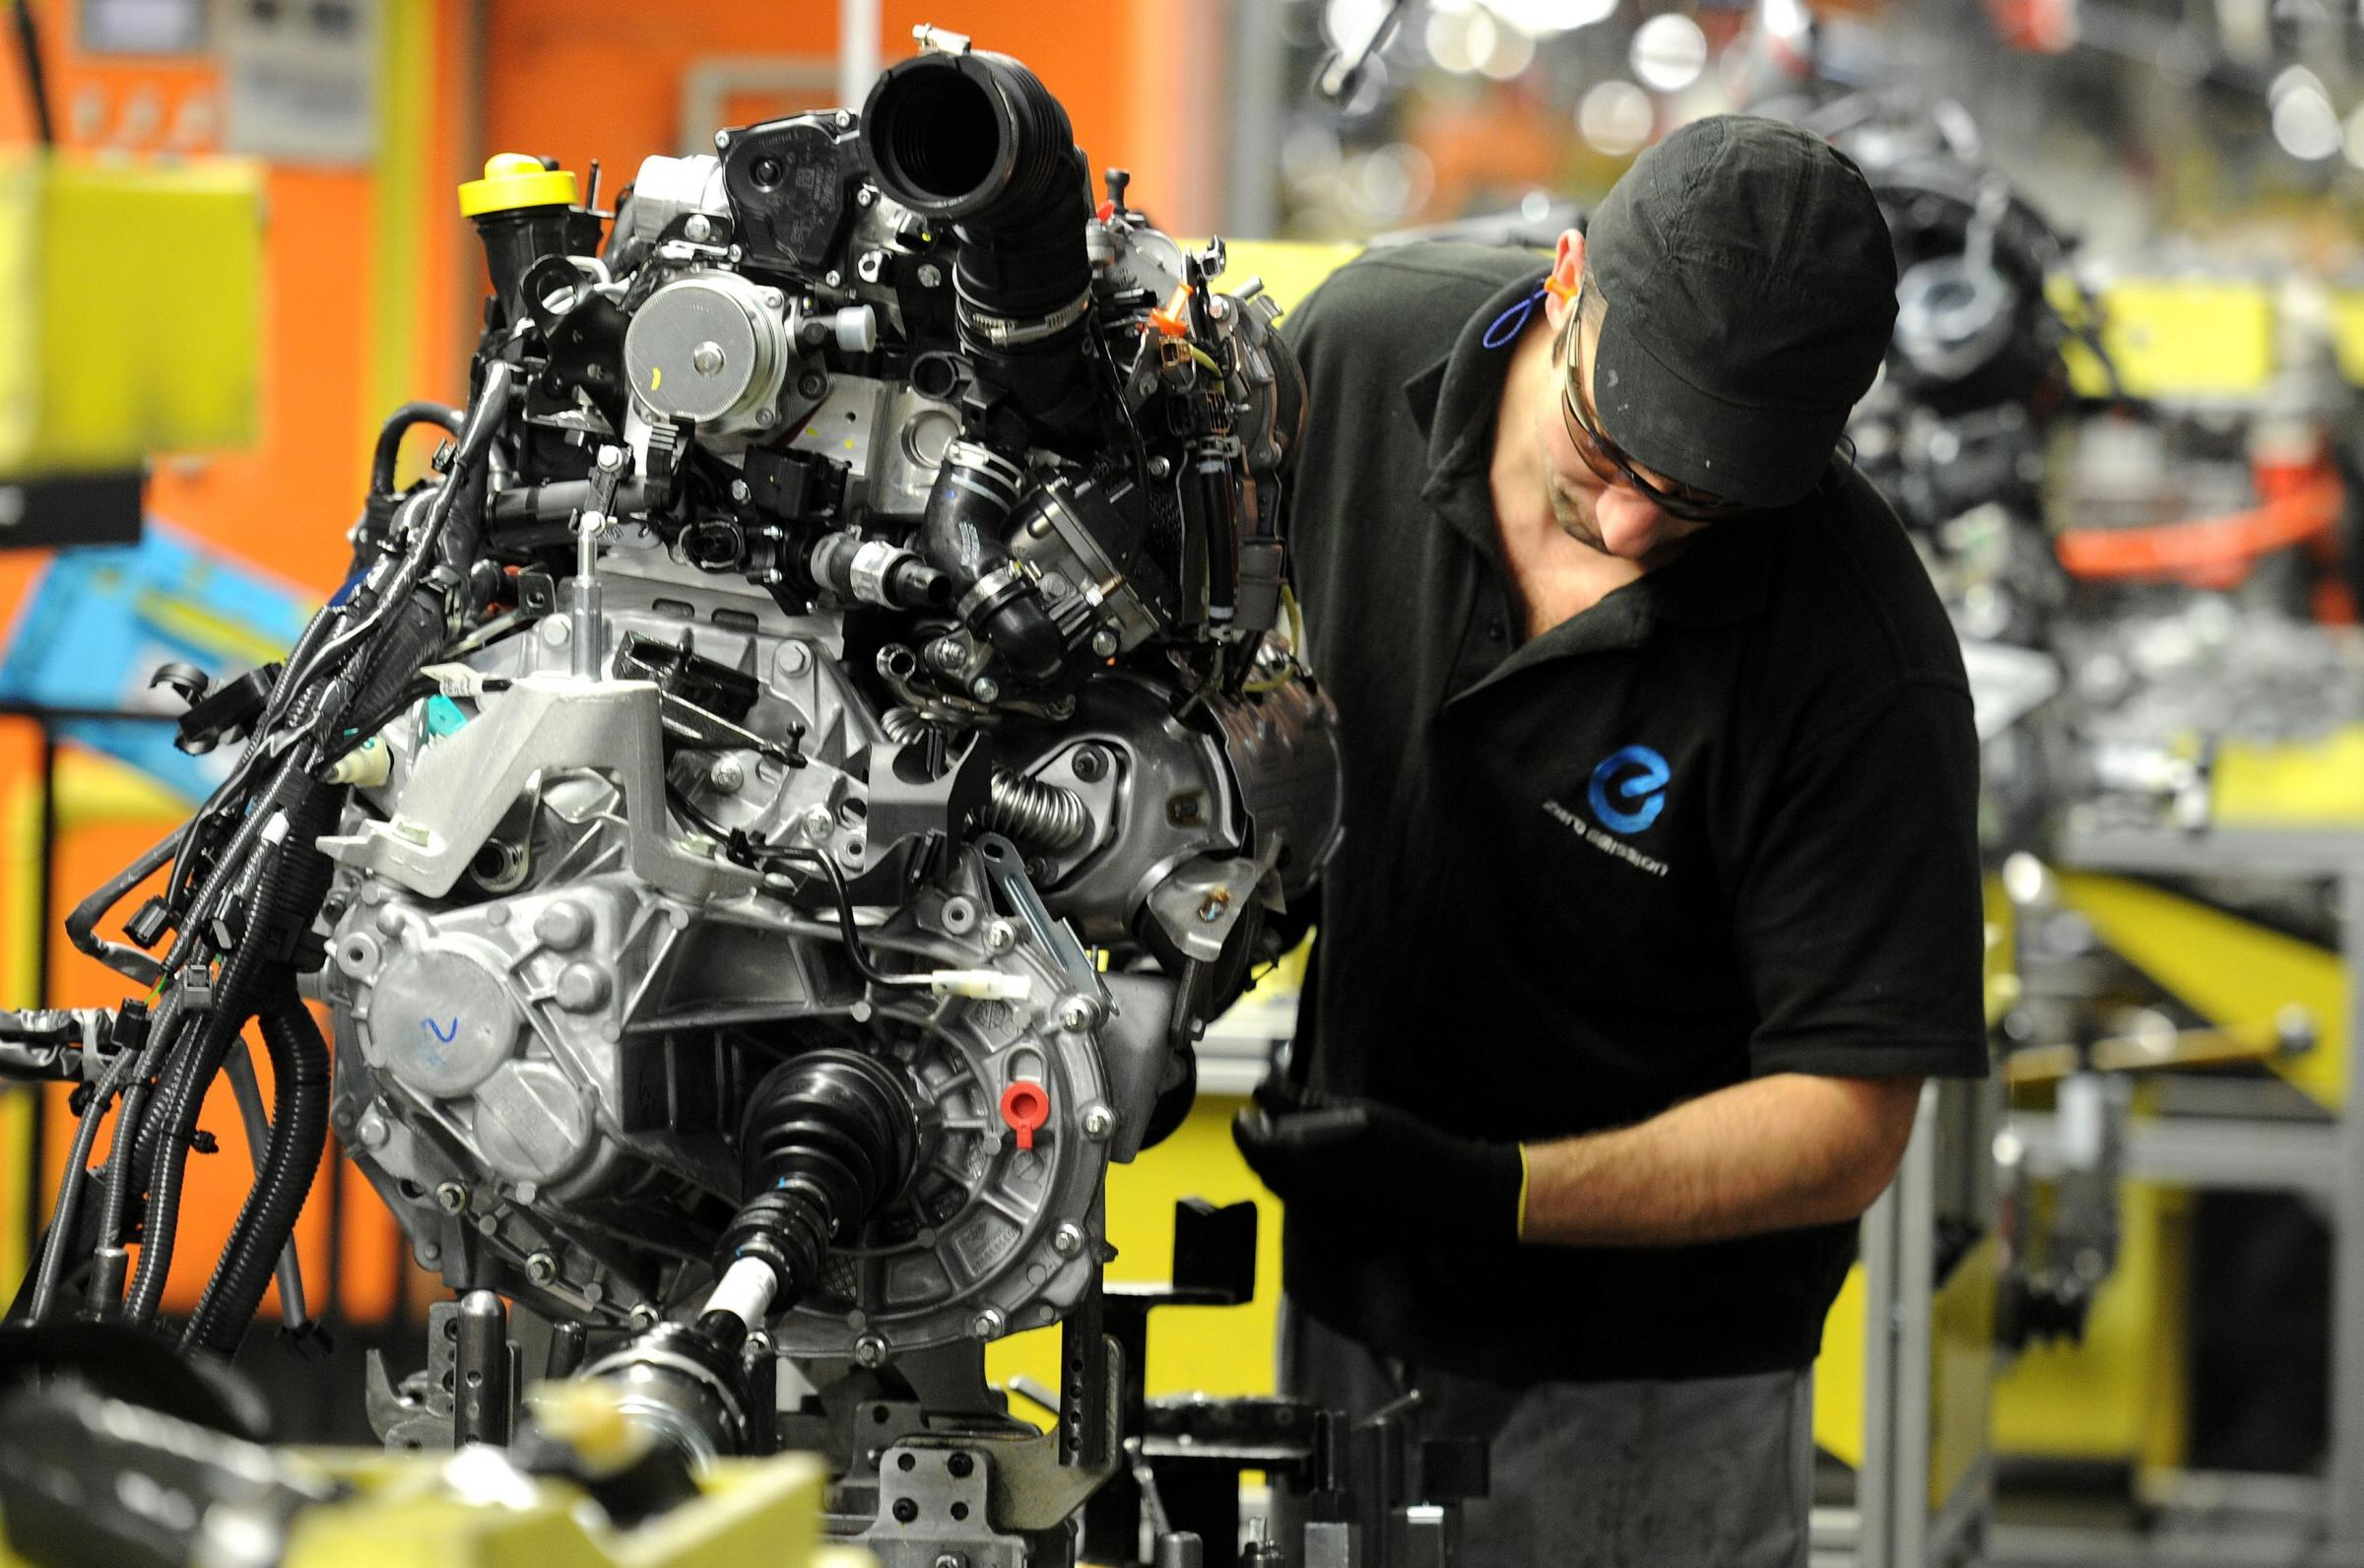 SALES RISE: A Nissan employee works on components for a Qashqai model